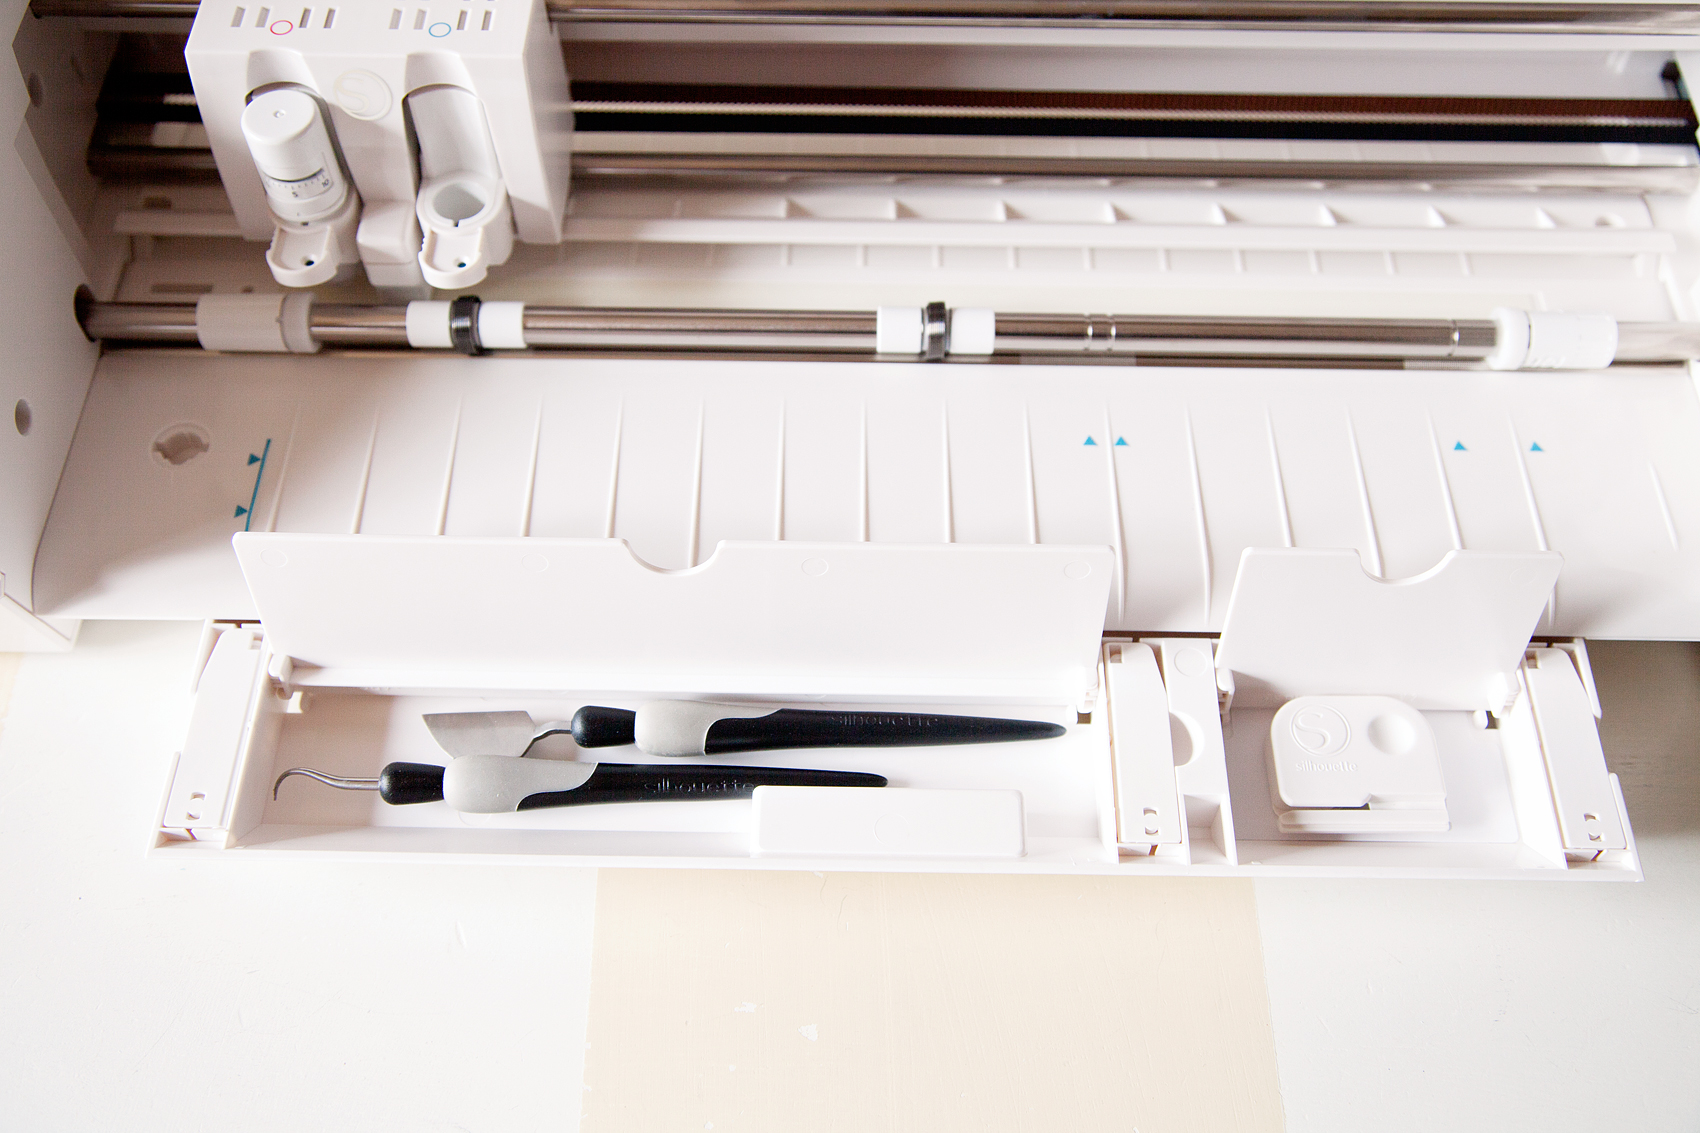 Cricut-vs.-Silhouette-via-WhipperBerry-6